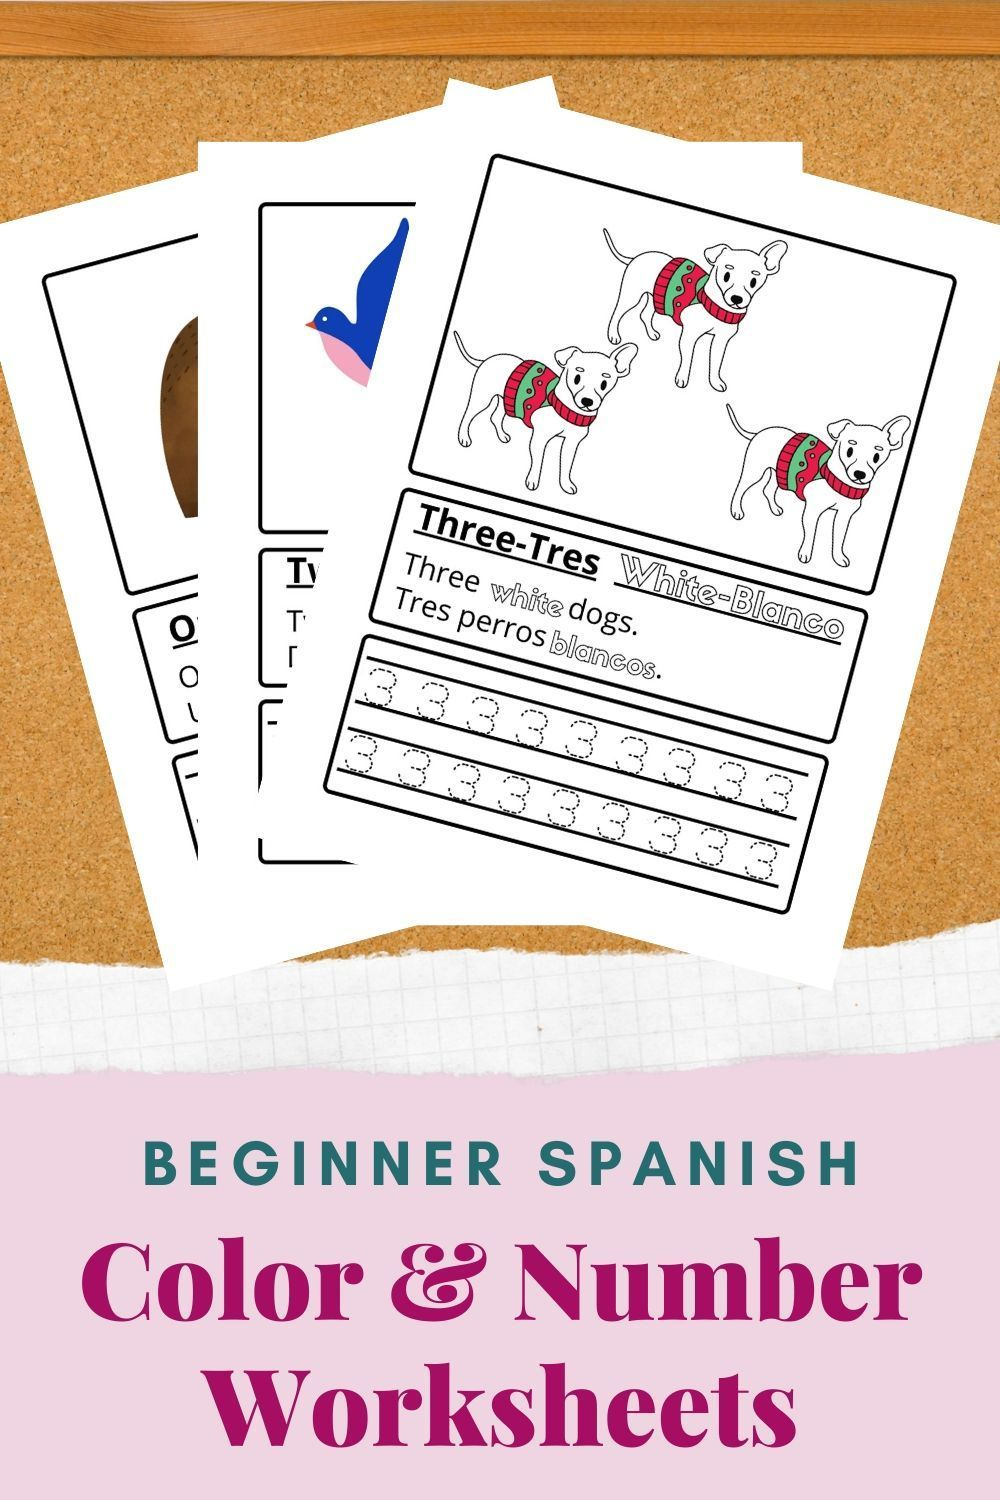 Printable Spanish Colors Numbers Worksheets Learning Pages Etsy Parenting Printables Preschool Tracing Parenting Organization [ 1500 x 1000 Pixel ]